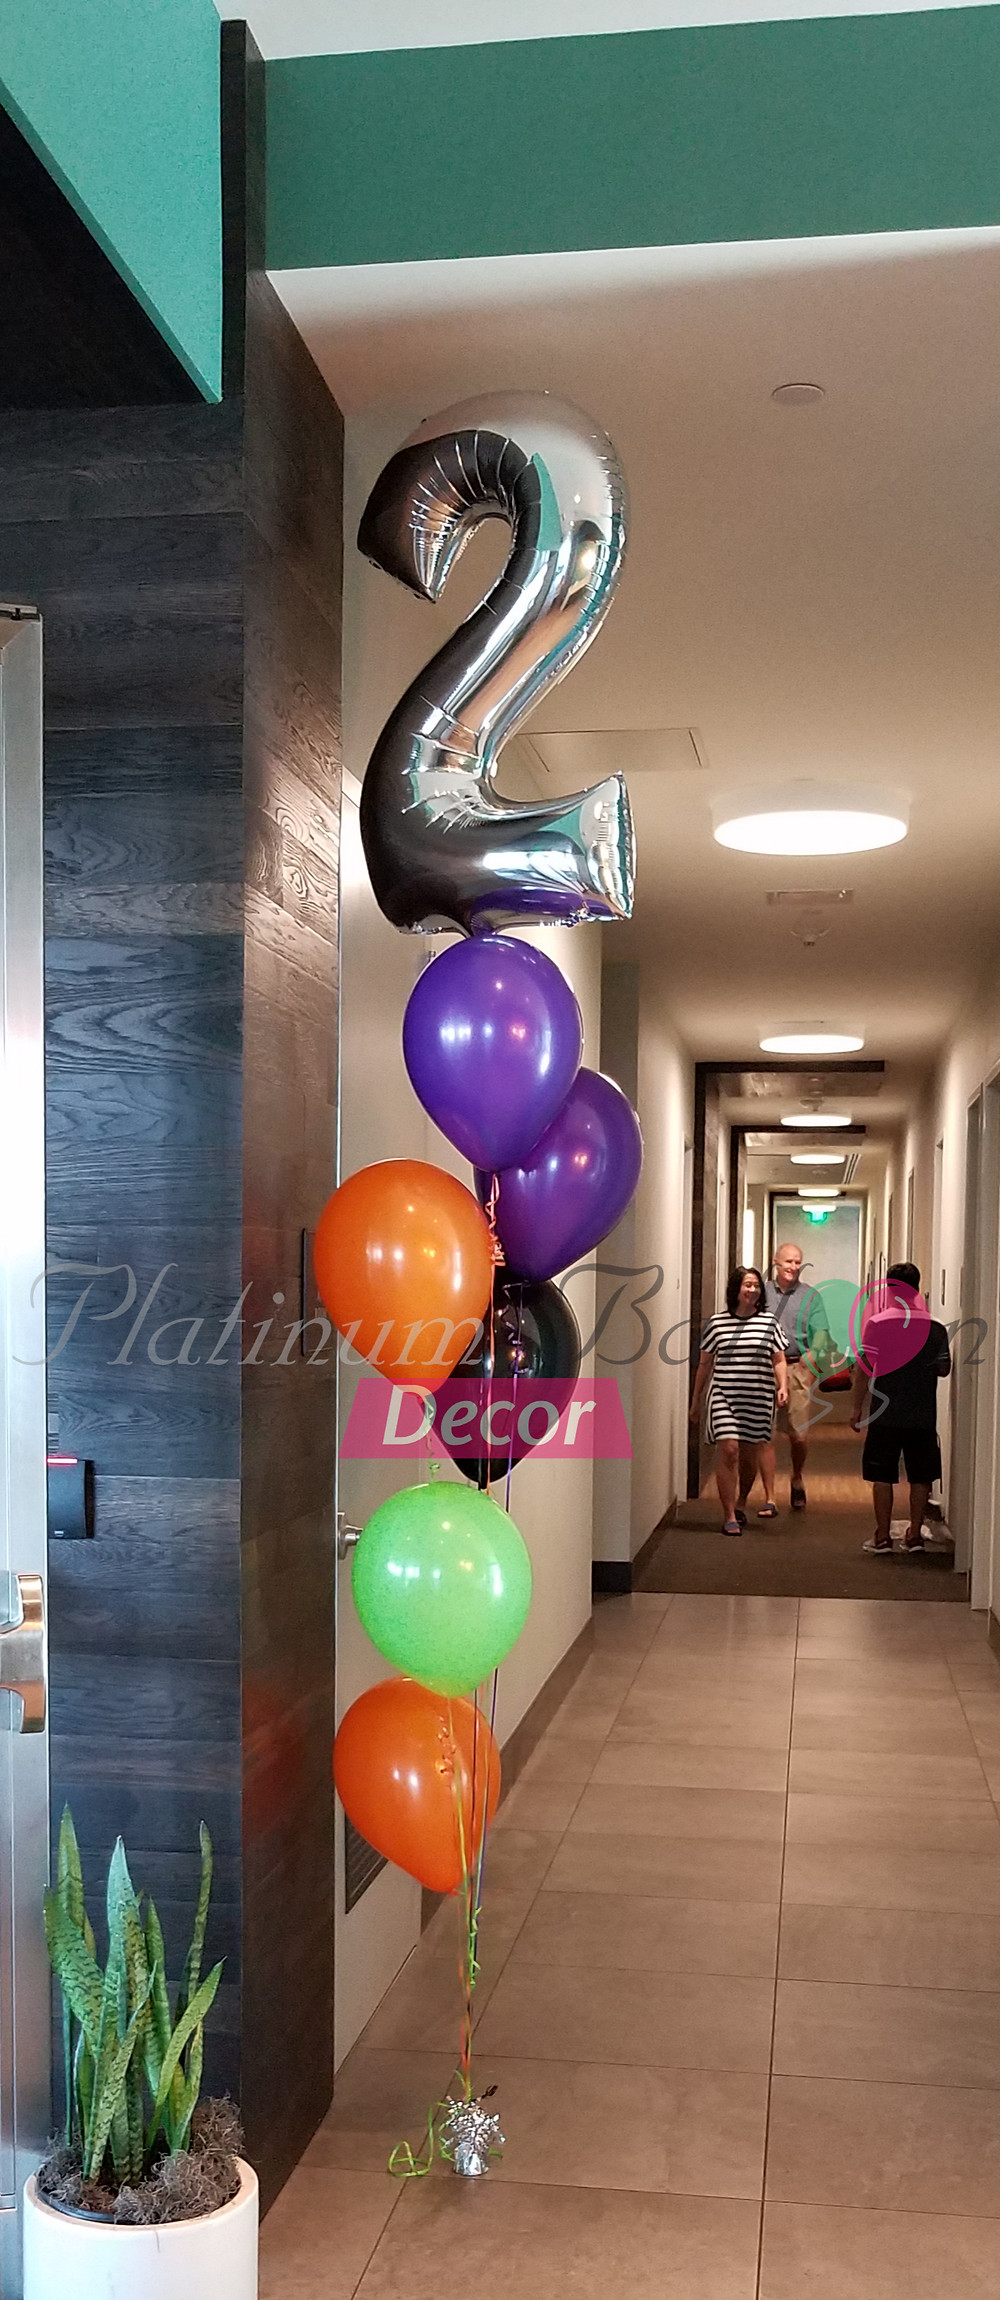 7 Balloon Floor Bouquet